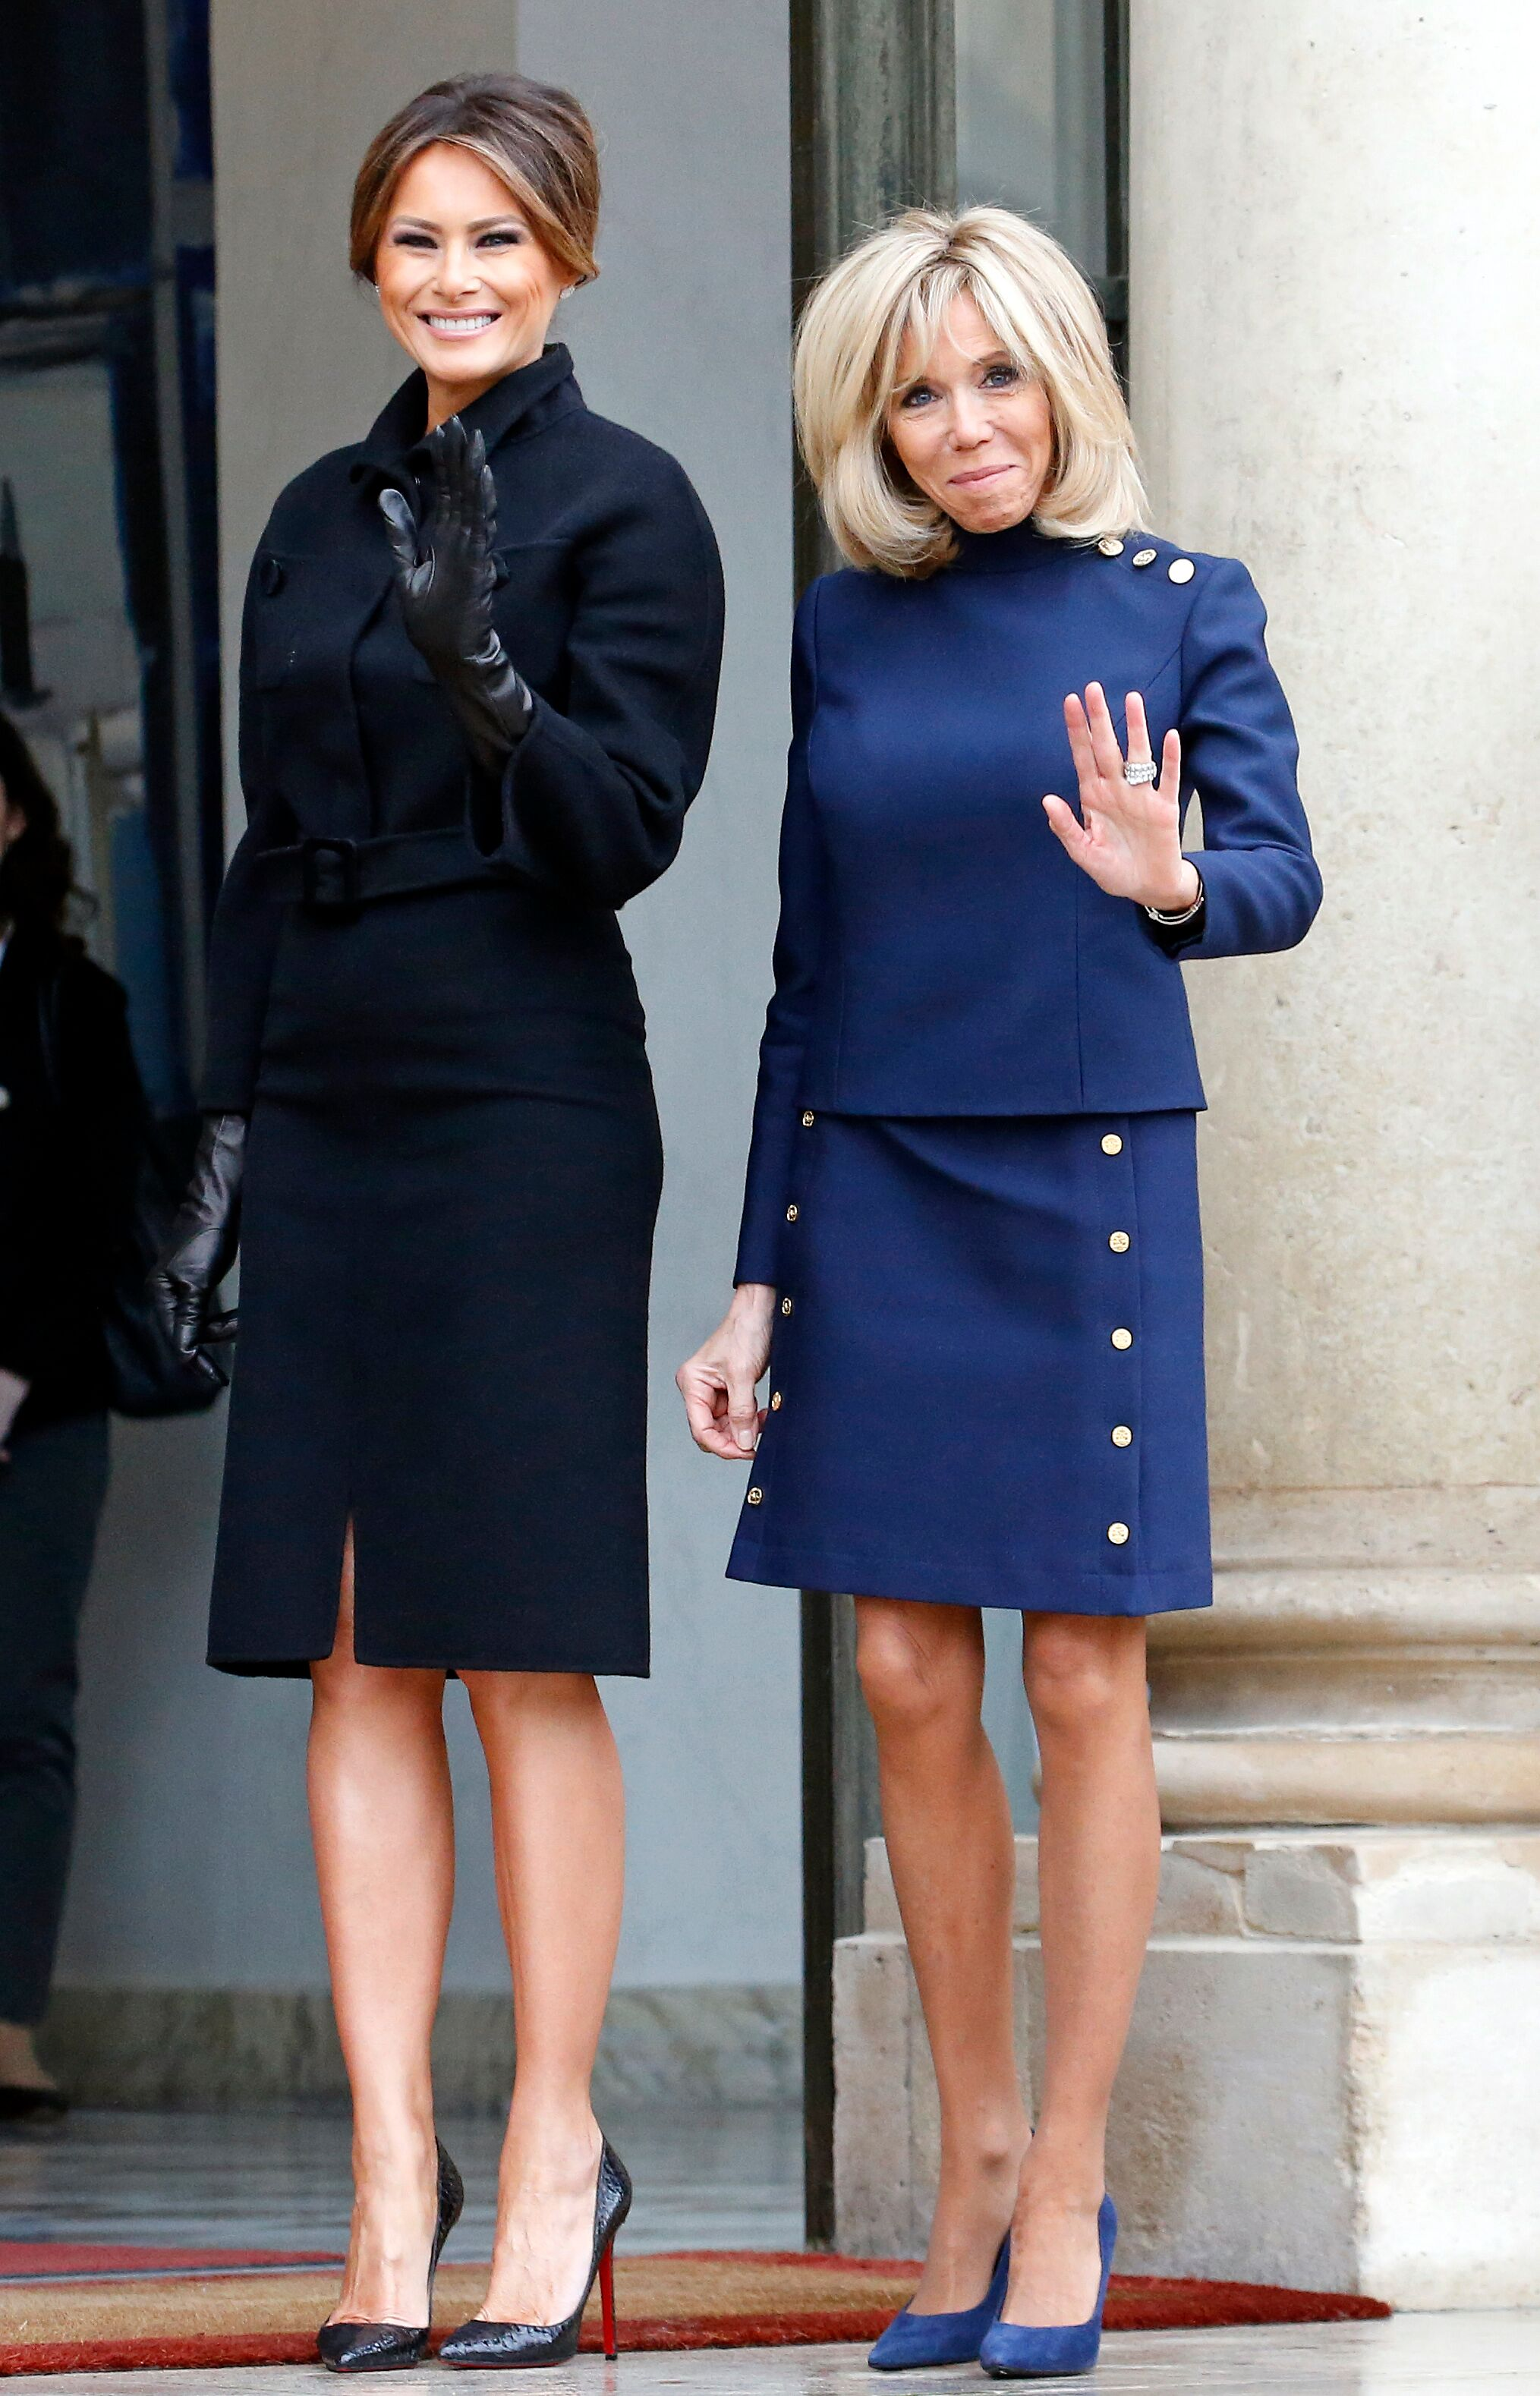 Brigitte Macron en compagnie de Melania Trump. l Source: Getty Images